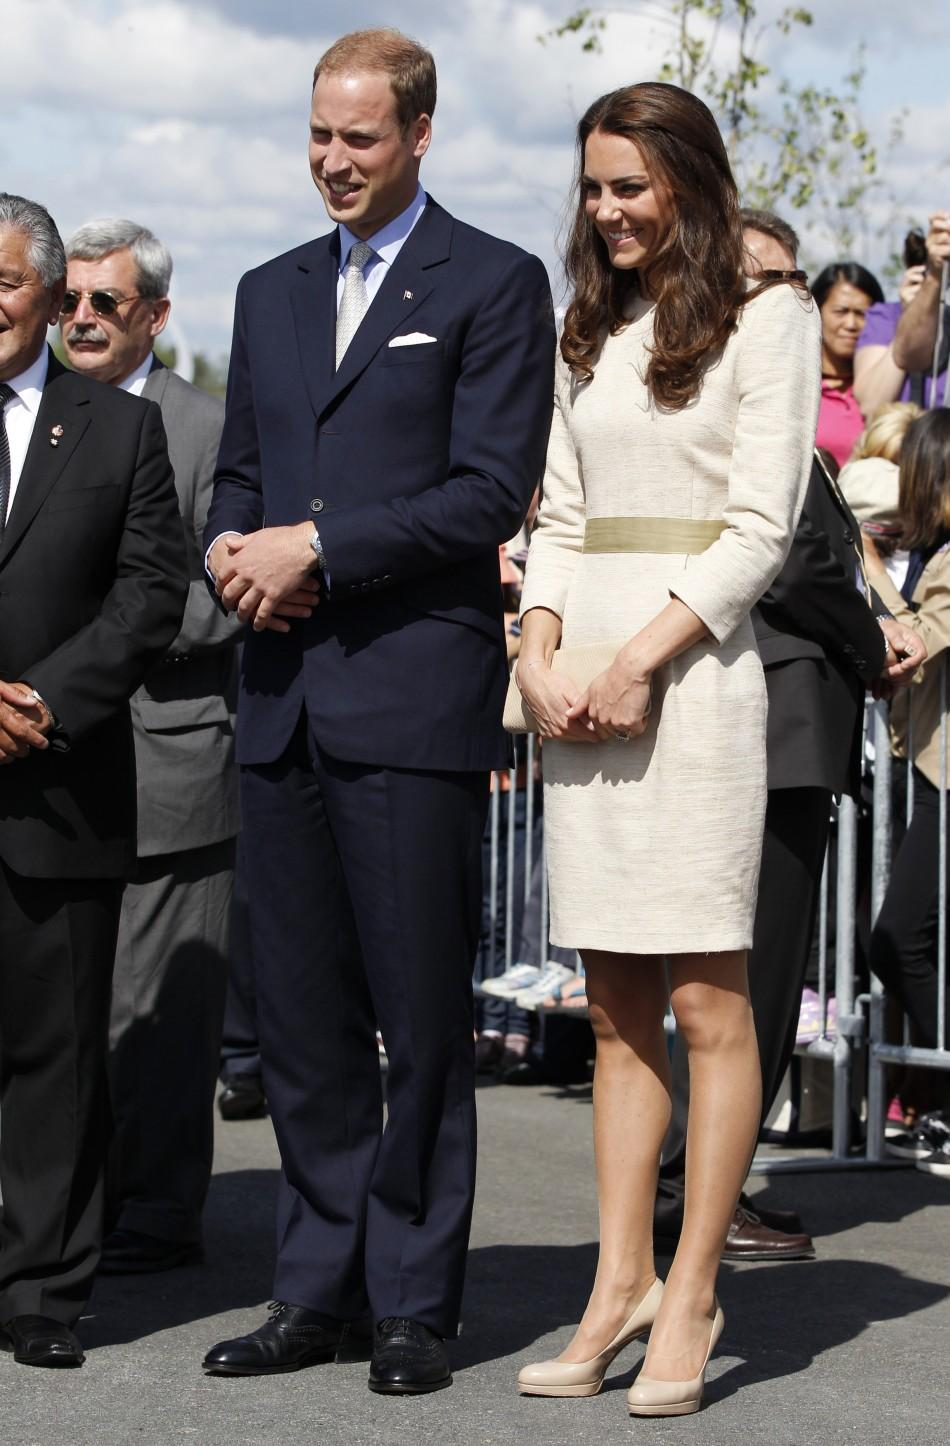 Structured and elegant: Kate Middleton's fashion statement for Day 6 Royal Tour.